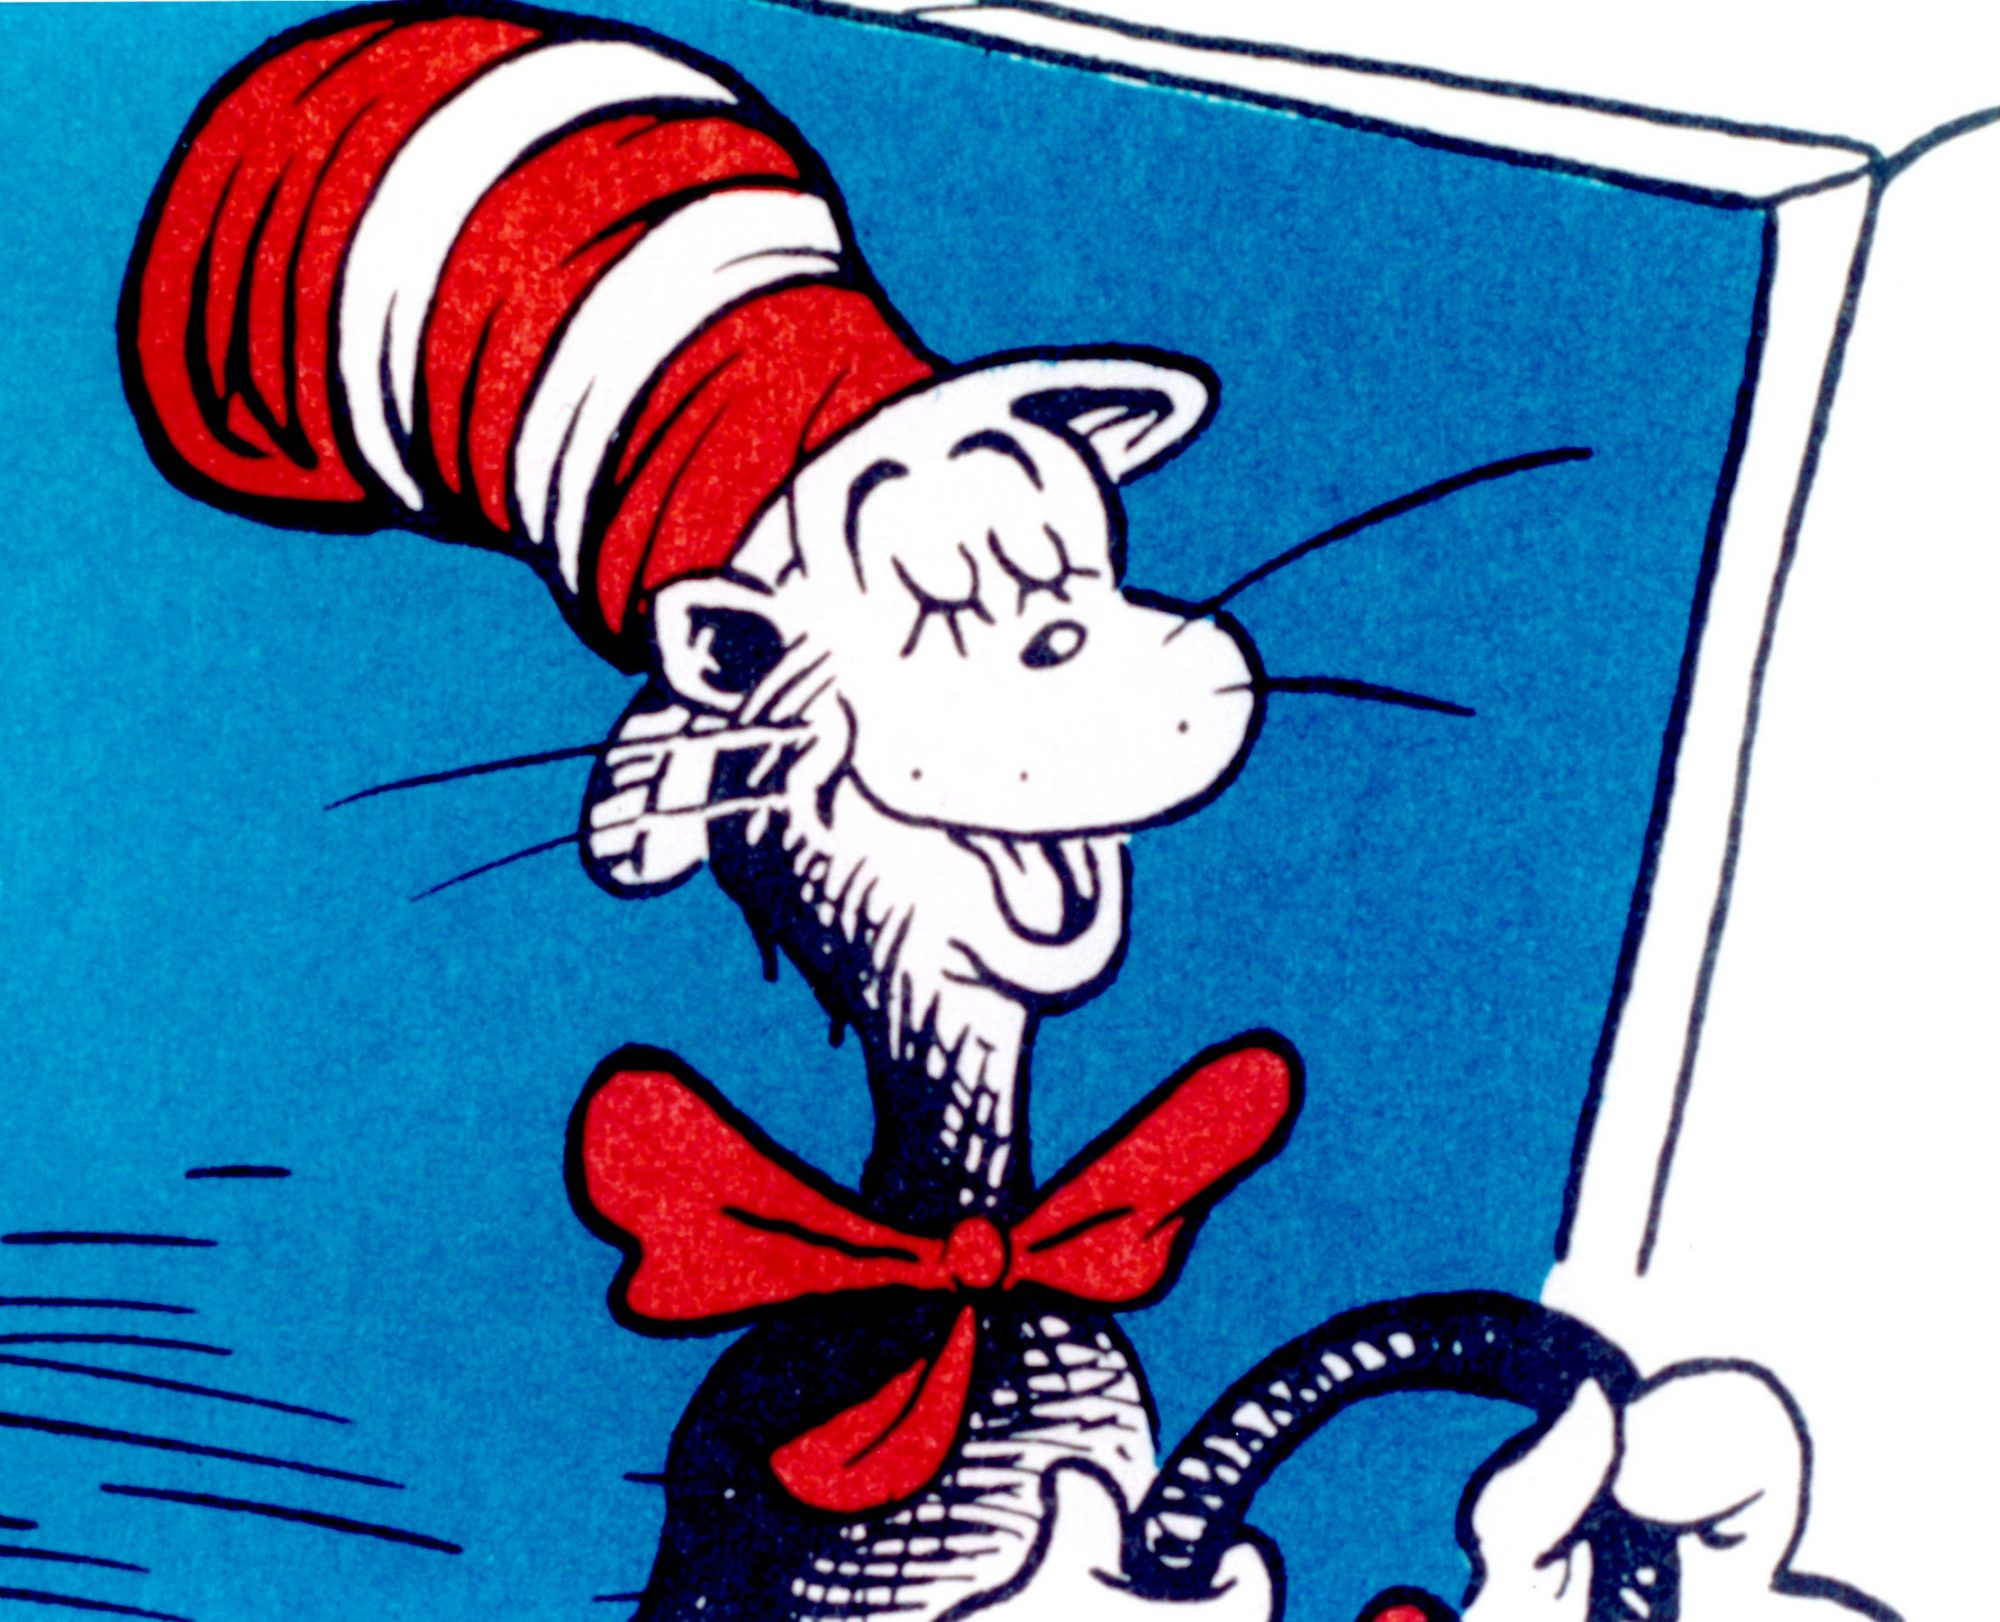 DR. SEUSS' THE CAT IN THE HAT, 1971.